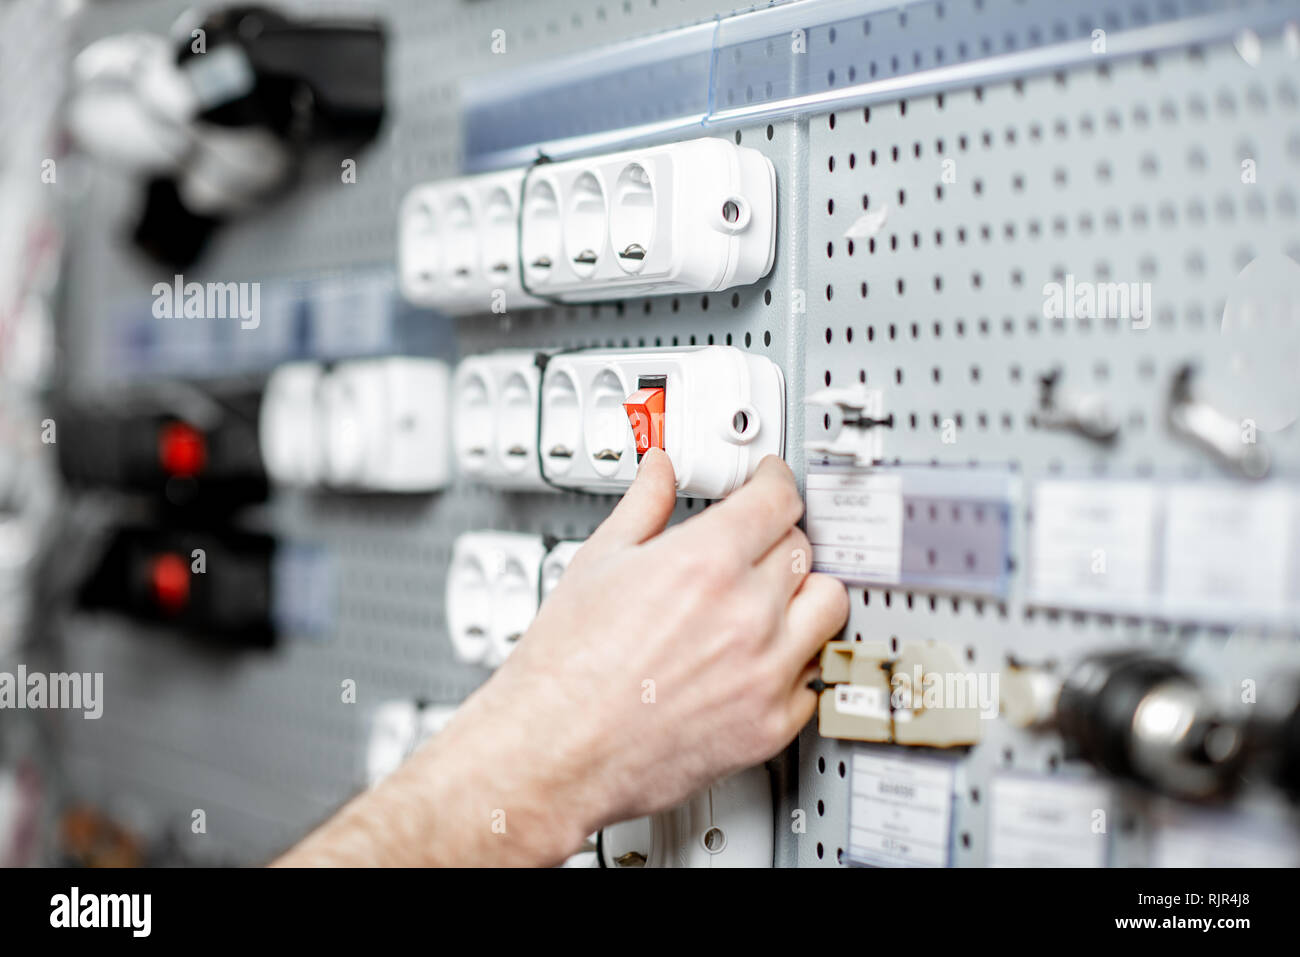 Choosing elecrical sockets in the shop with electrical goods, close-up view Stock Photo